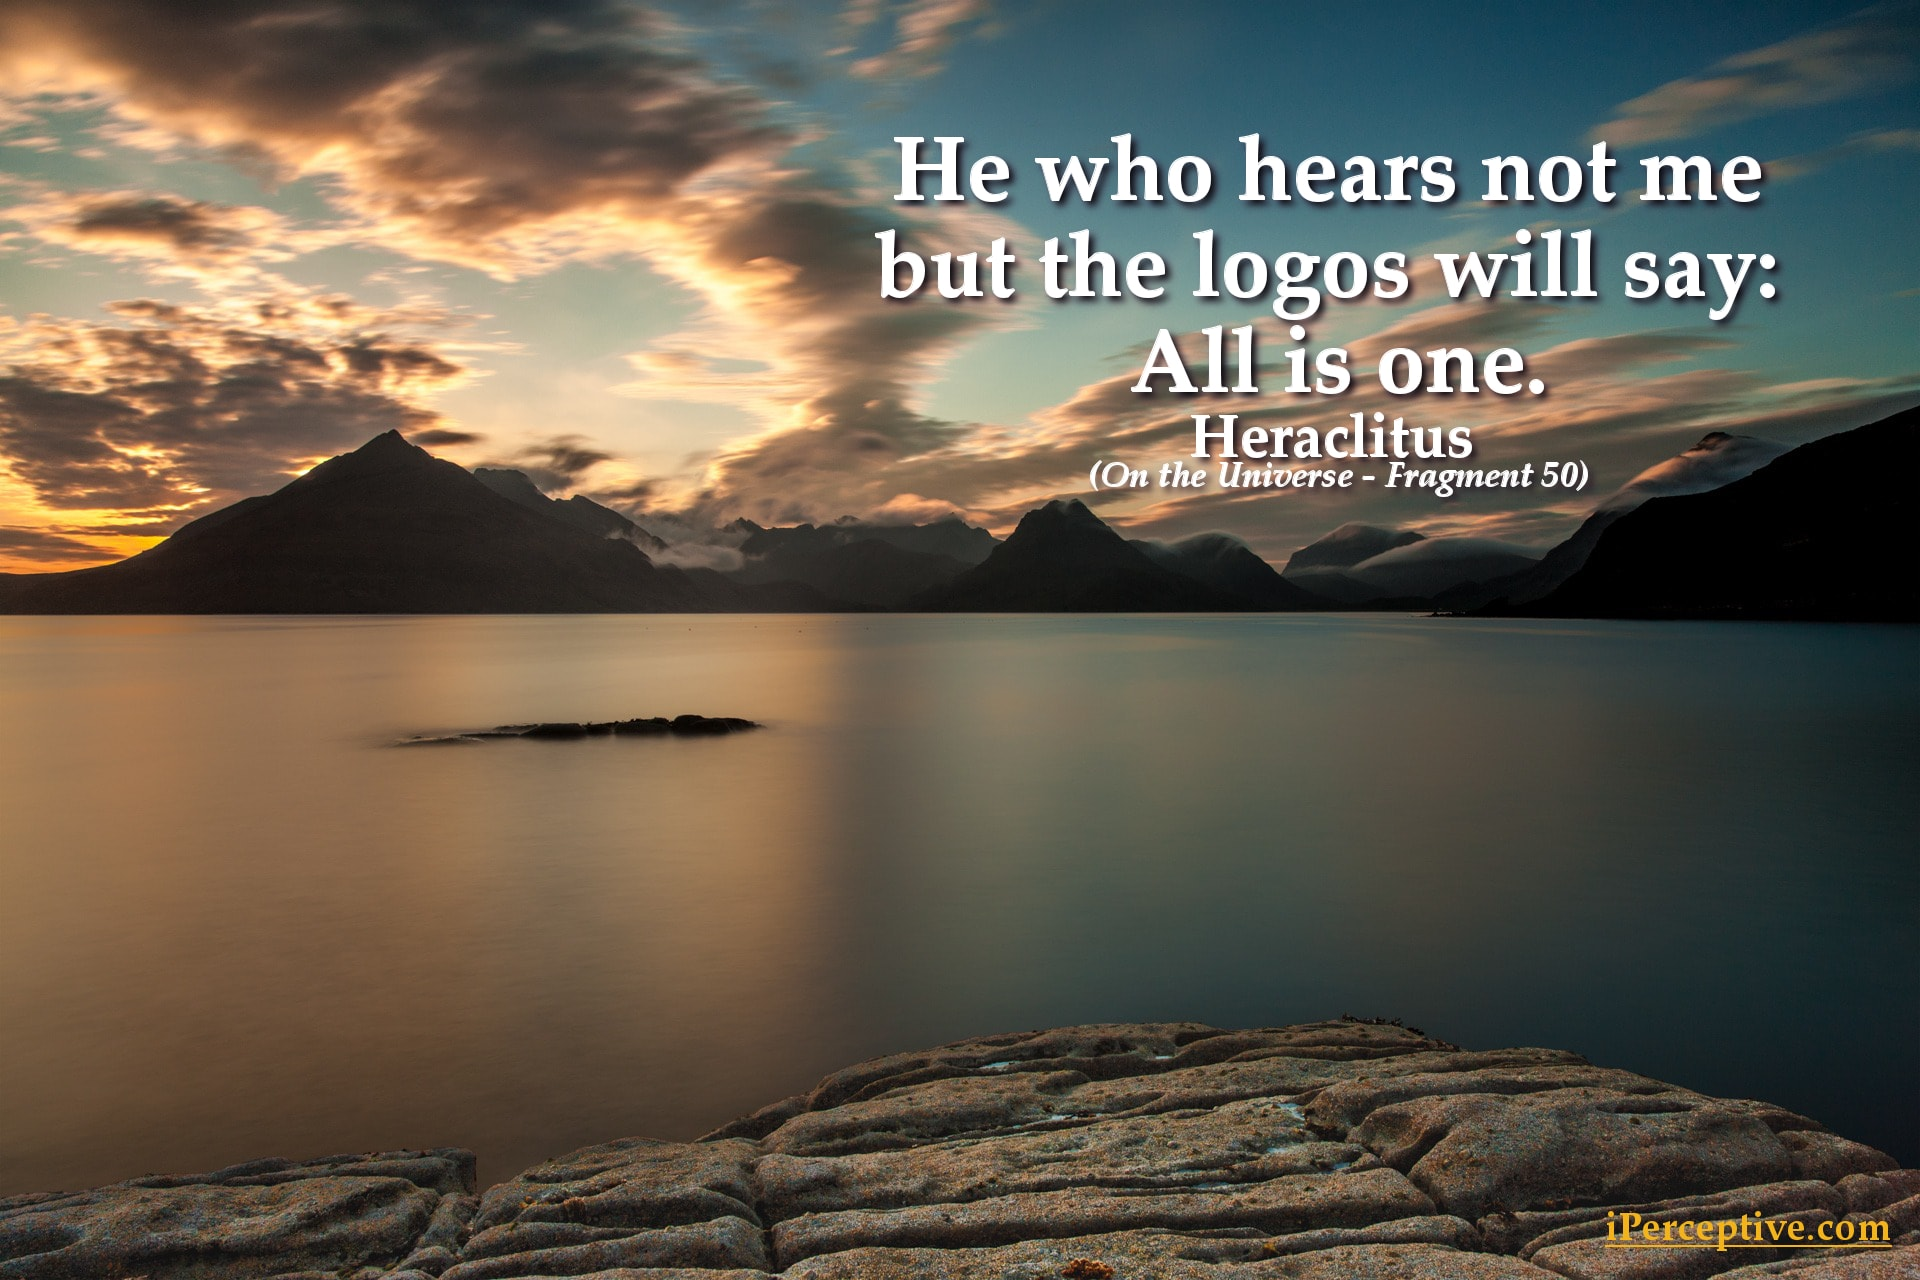 Heraclitus Quote: He who hears not me but the logos will say: All is one...